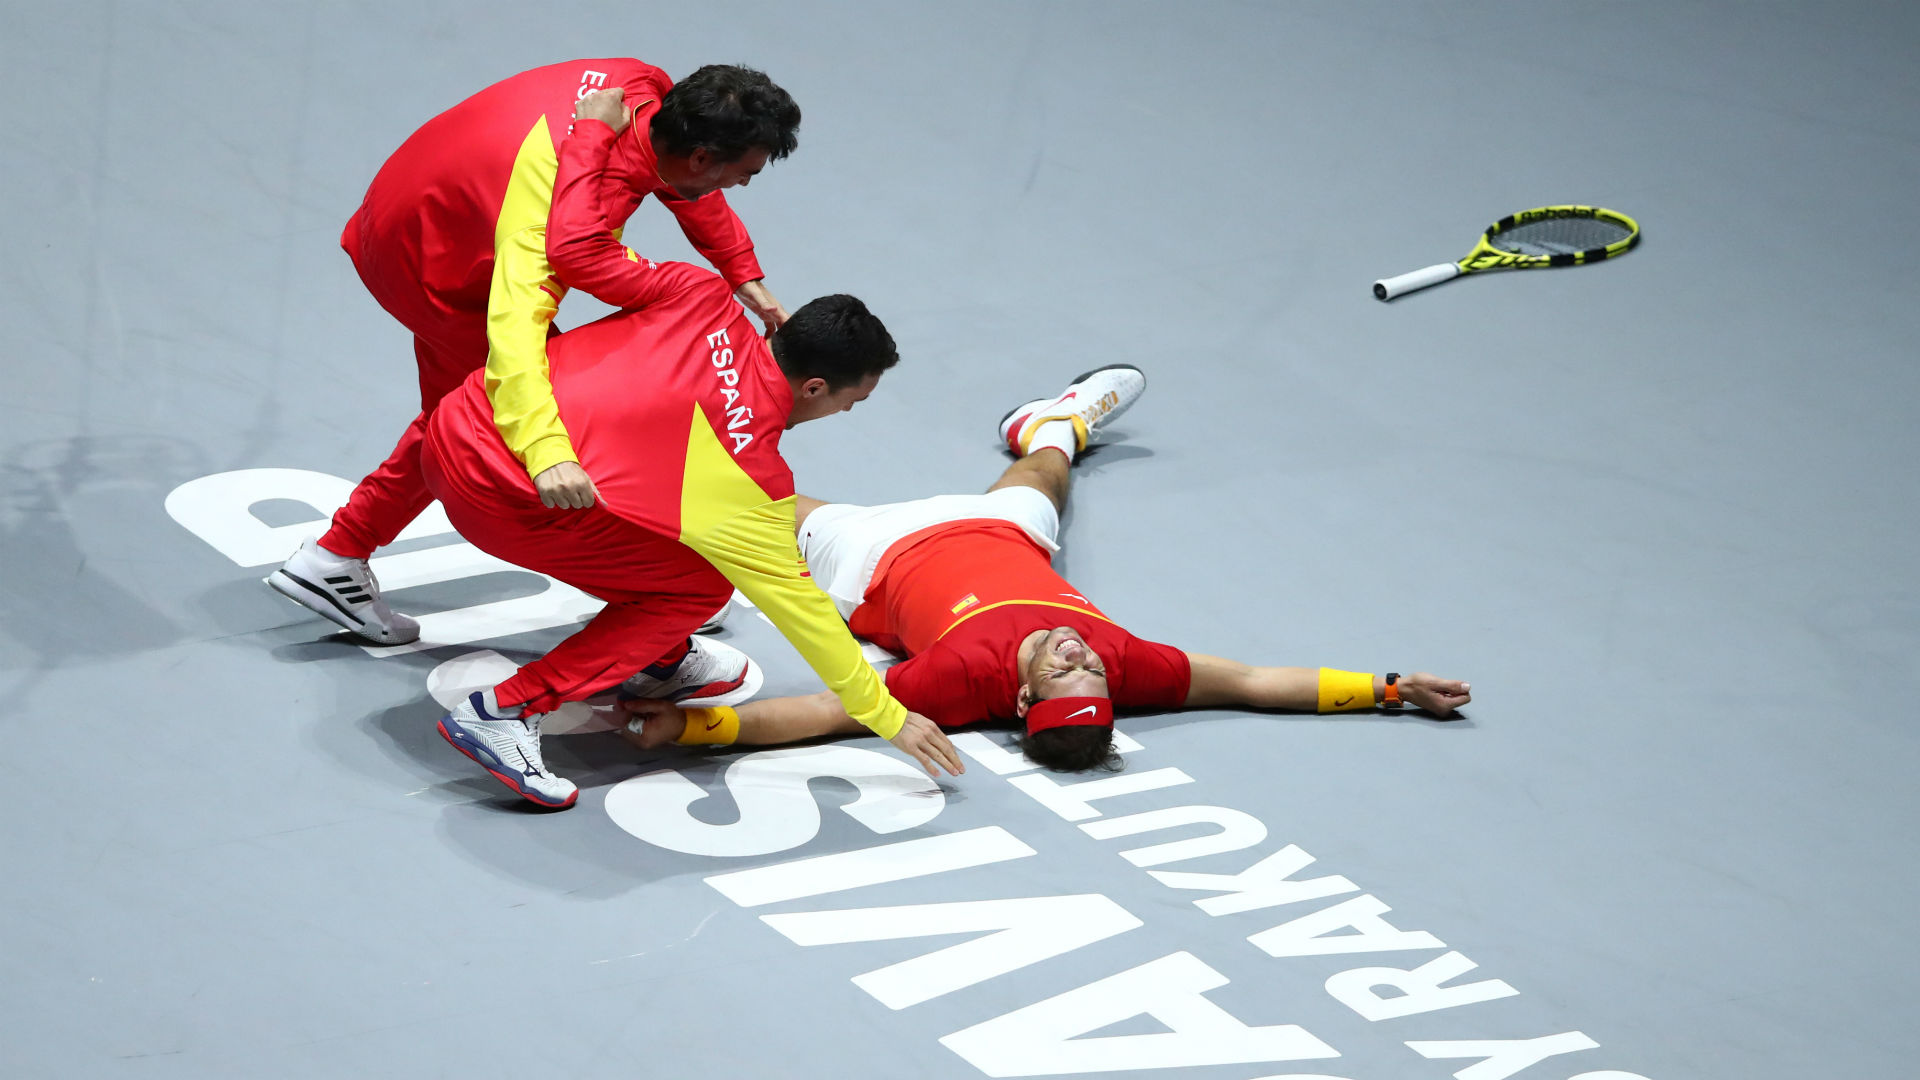 Nadal and Bautista Agut seal emotional Davis Cup triumph for Spain